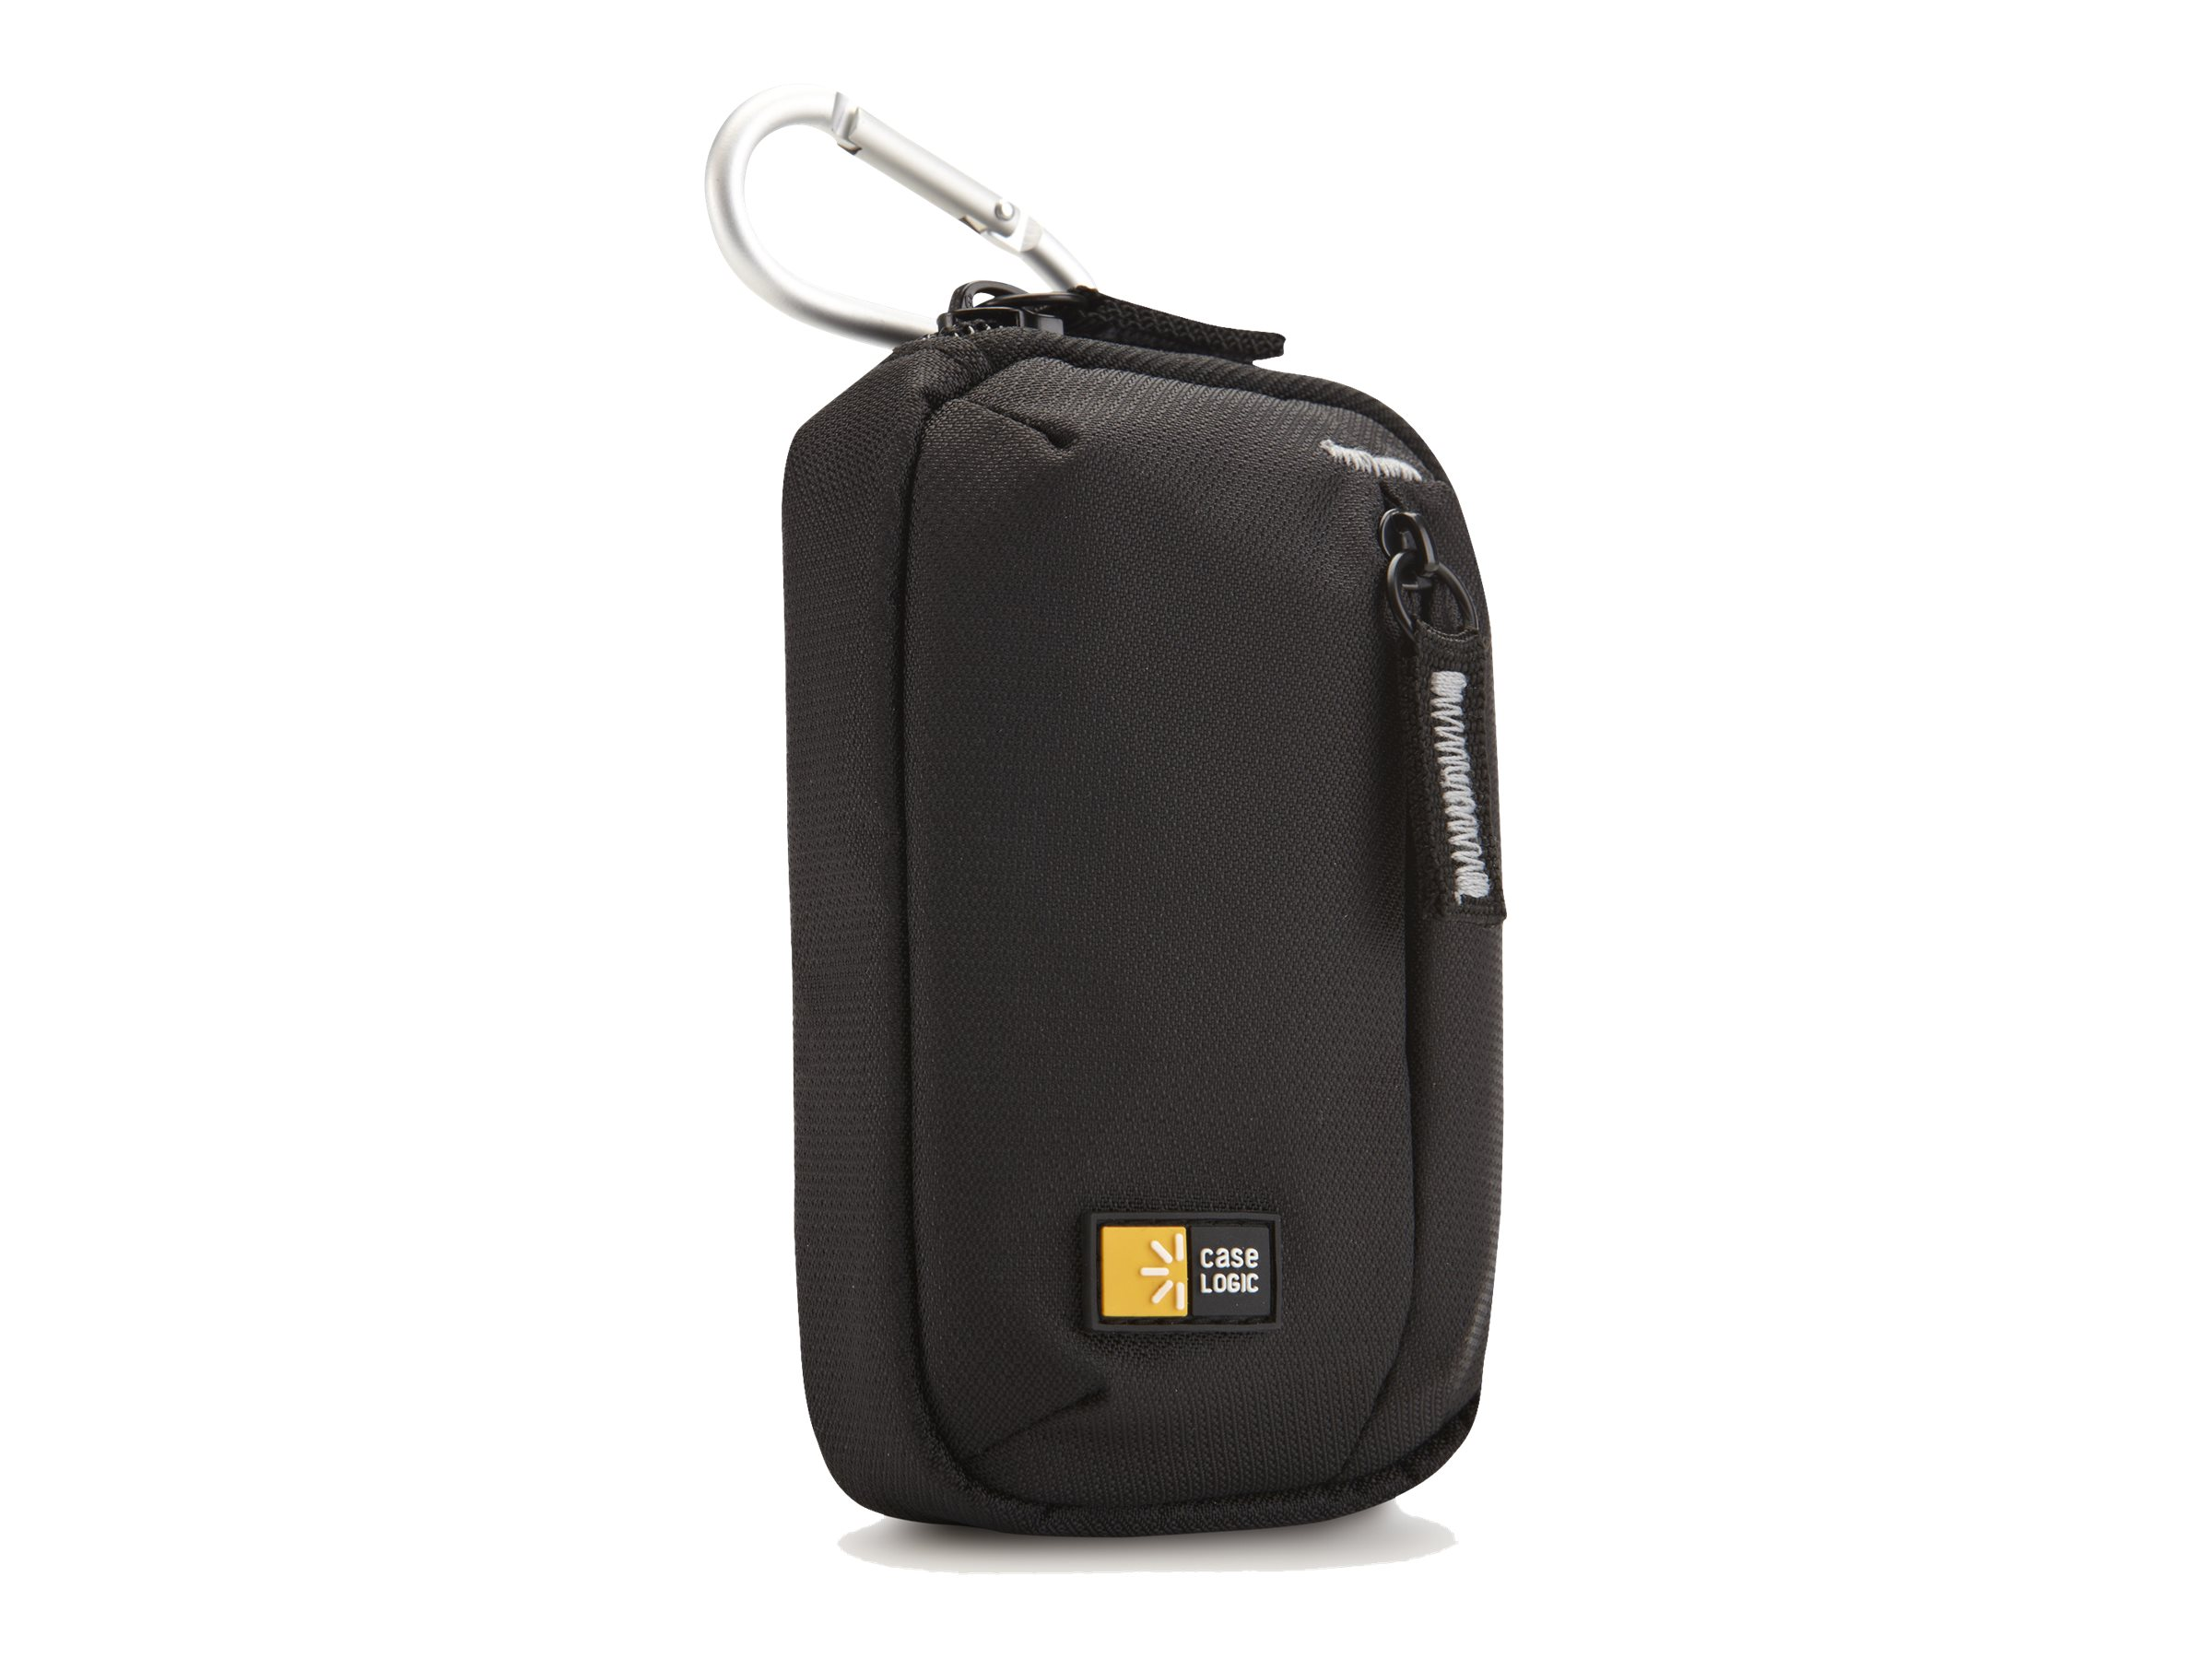 Case Logic Point and Shoot Camera - case for camera